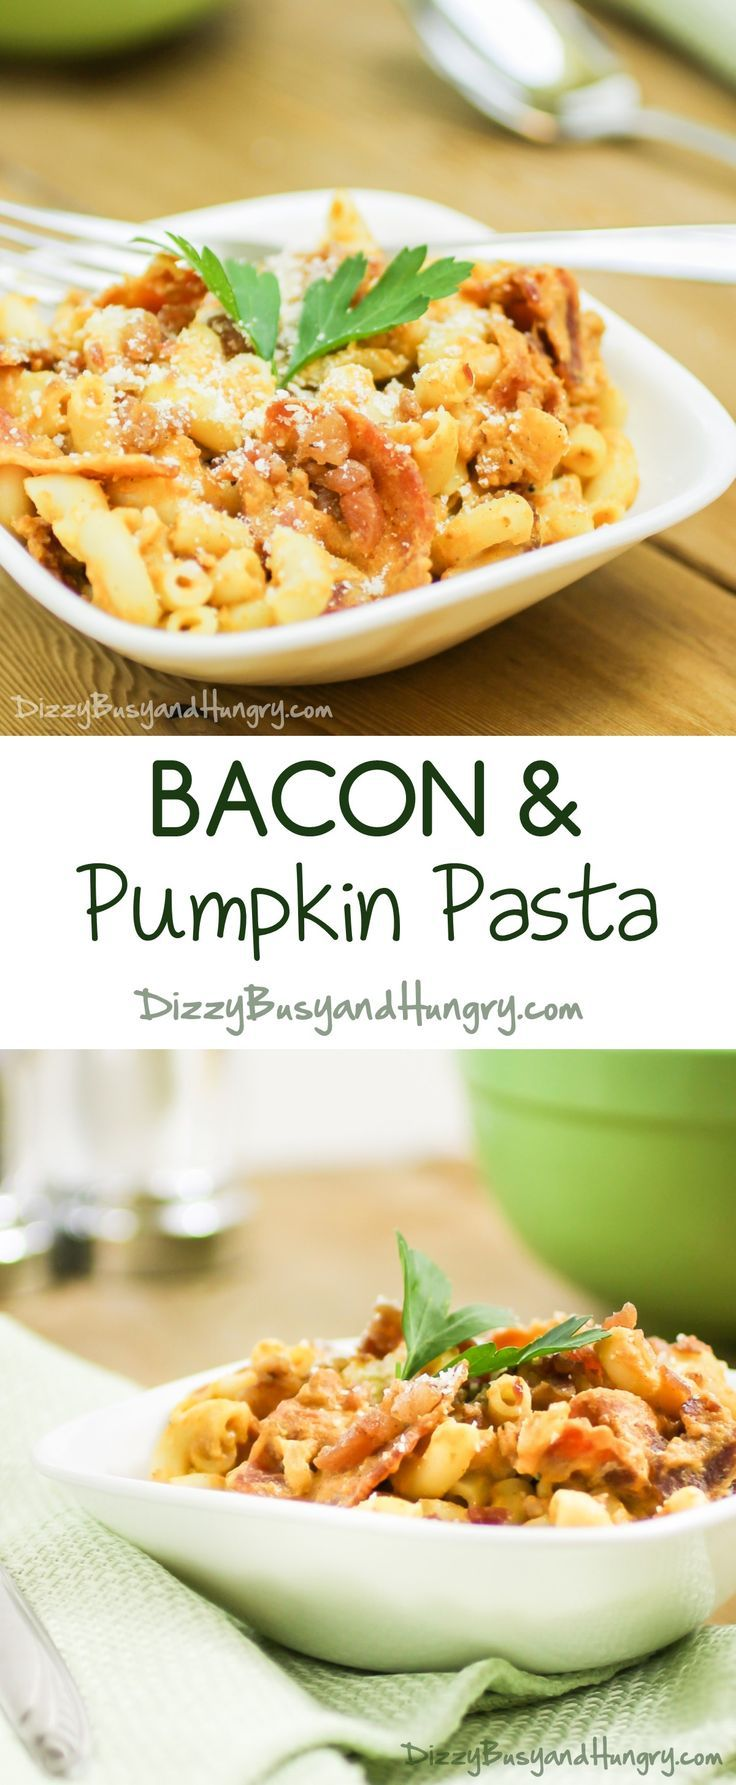 Bacon and Pumpkin Pasta #SundaySupper Healthy AND delicious! You gotta try this! http://www.dizzybusyandhungry.com/bacon-and-pumpkin-pasta/